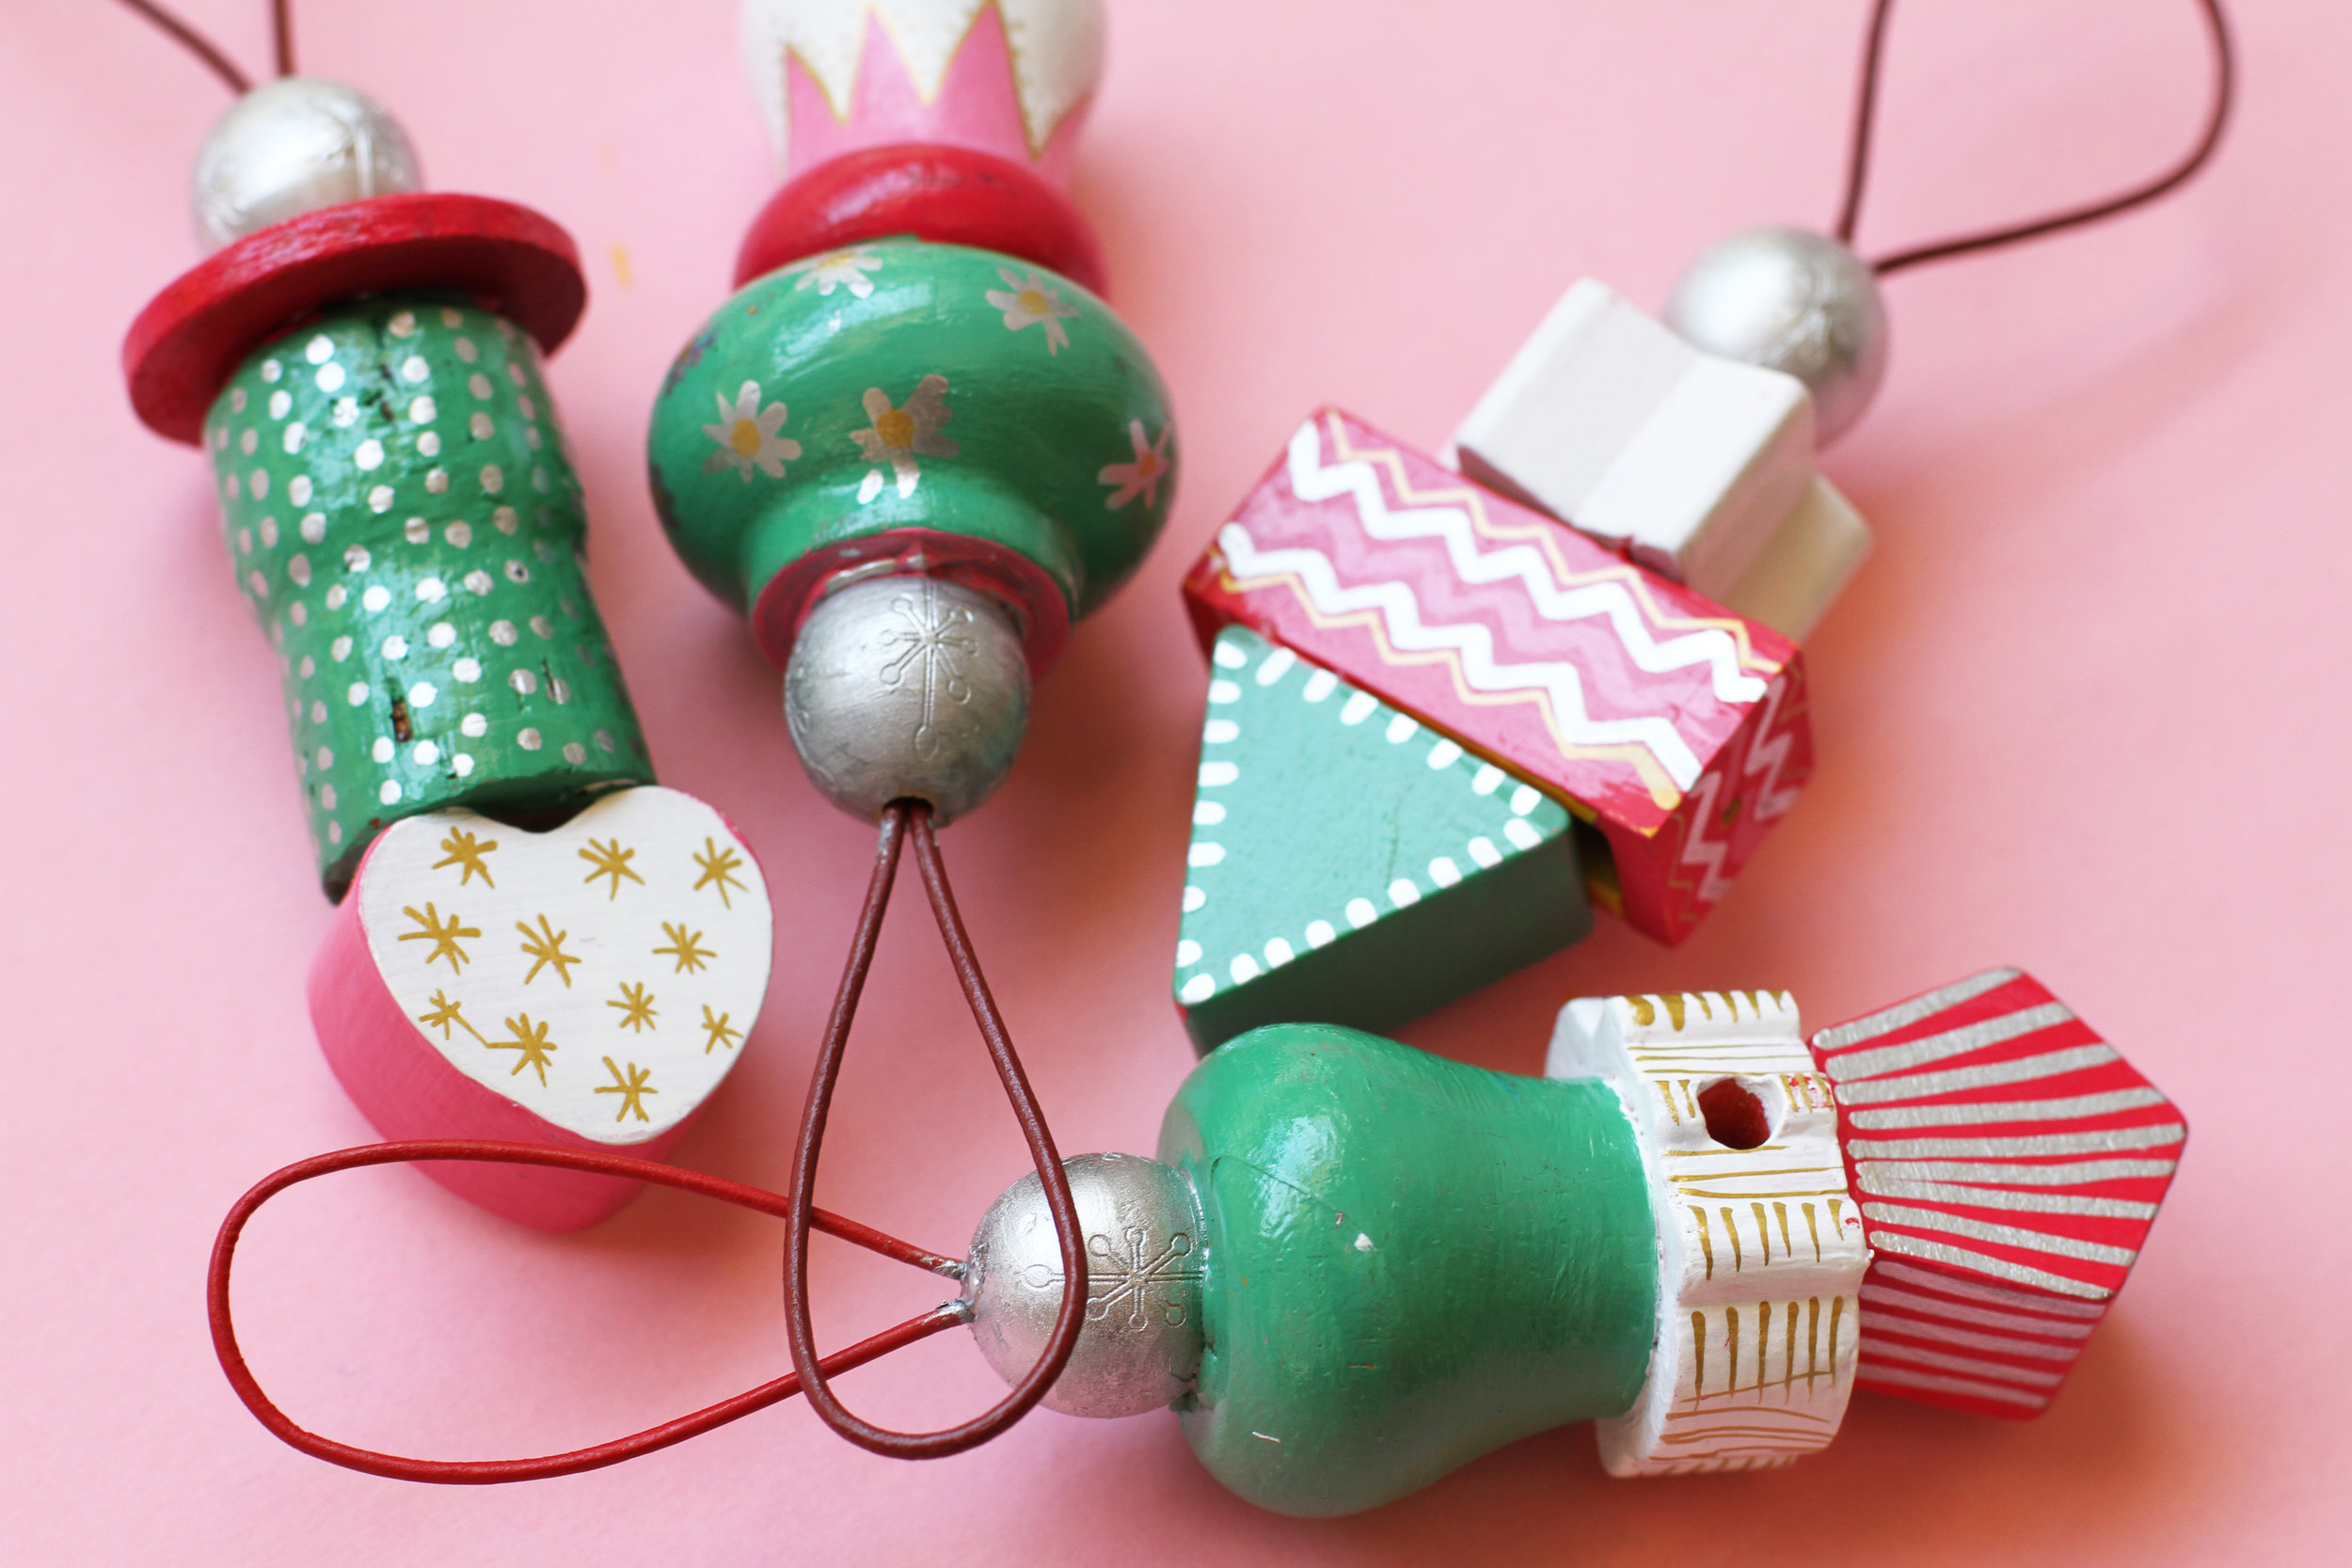 Painted Wooden Ornaments from Handy with Scissors